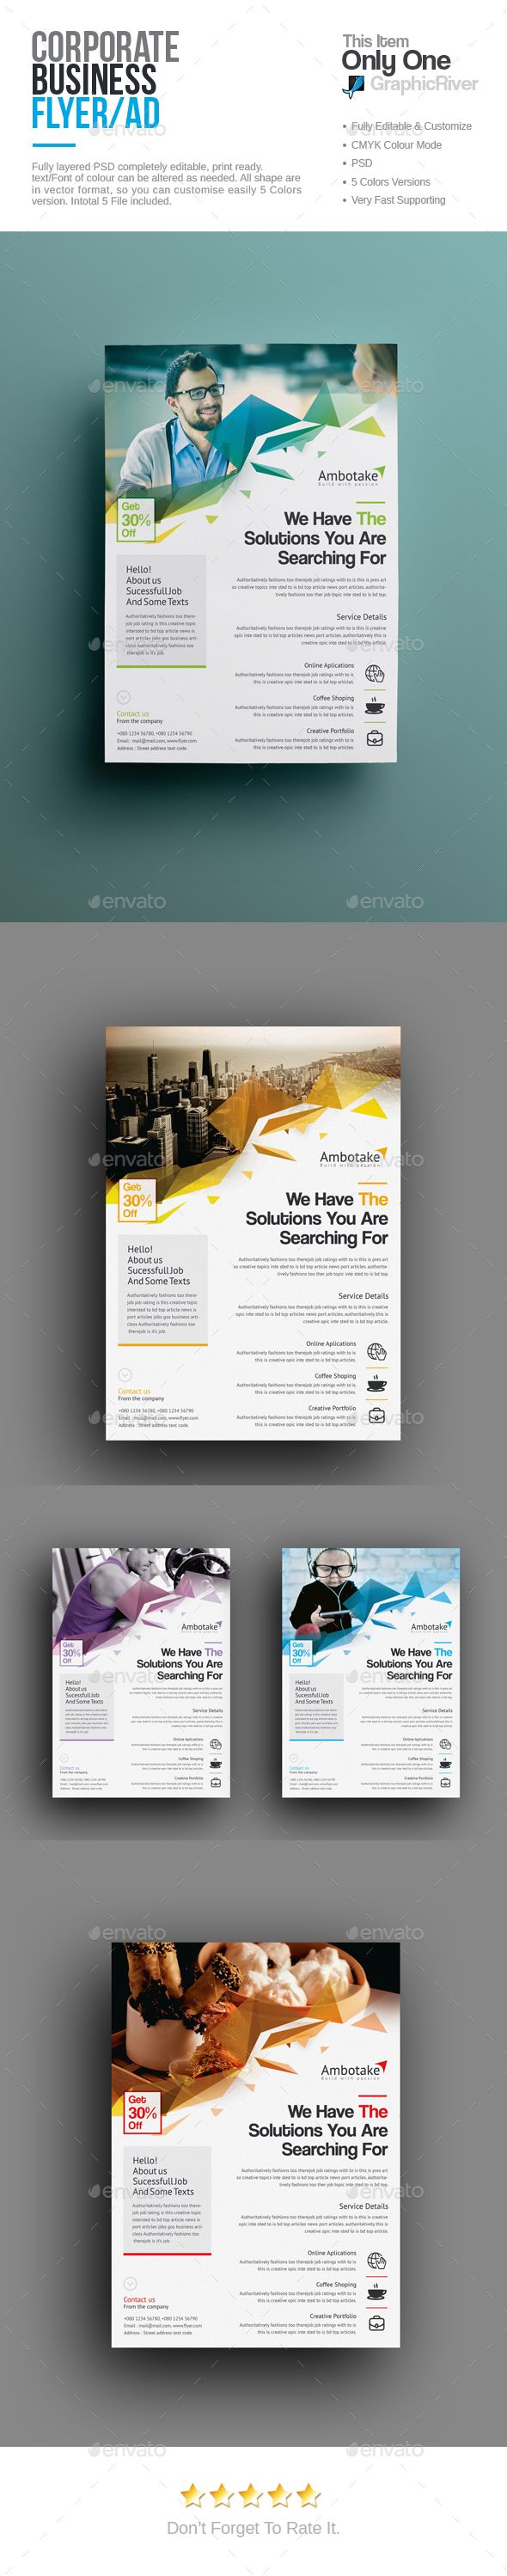 Corporate Flyer Template PSD. Download here: http://graphicriver.net/item/corporate-flyer/16294954?ref=ksioks